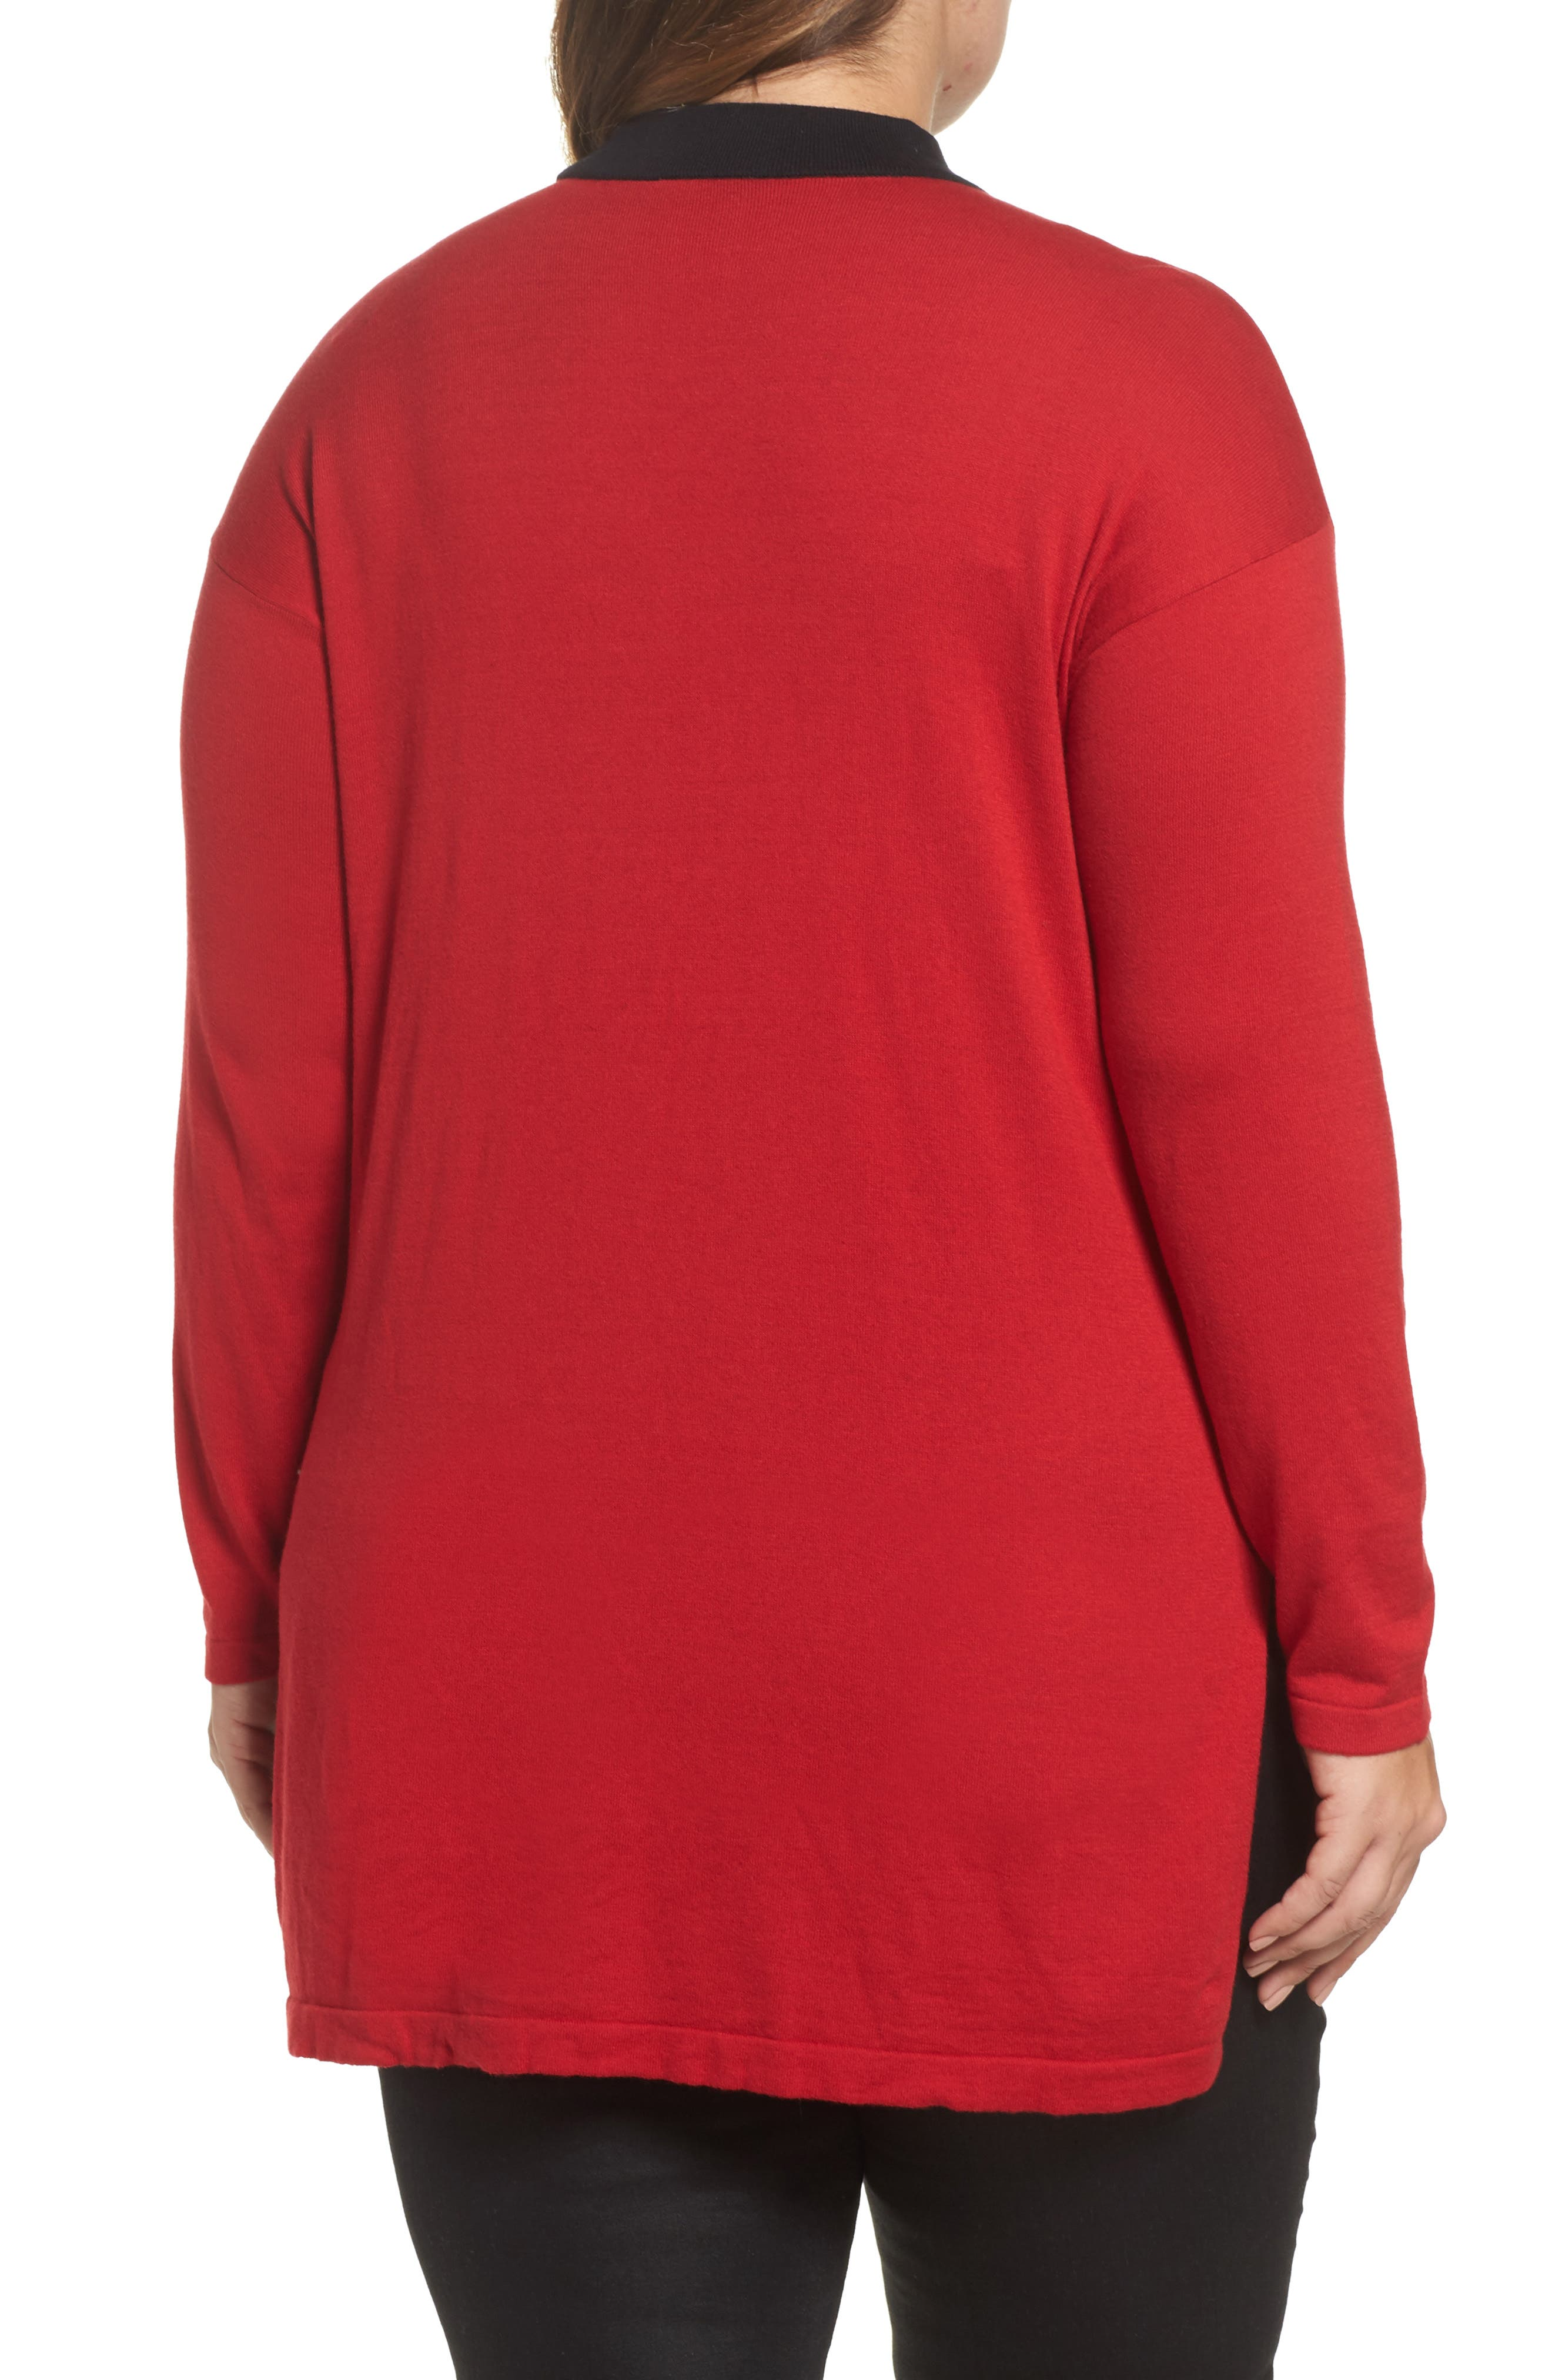 Alternate Image 2  - Vince Camuto Choker Neck Sweater (Plus Size)